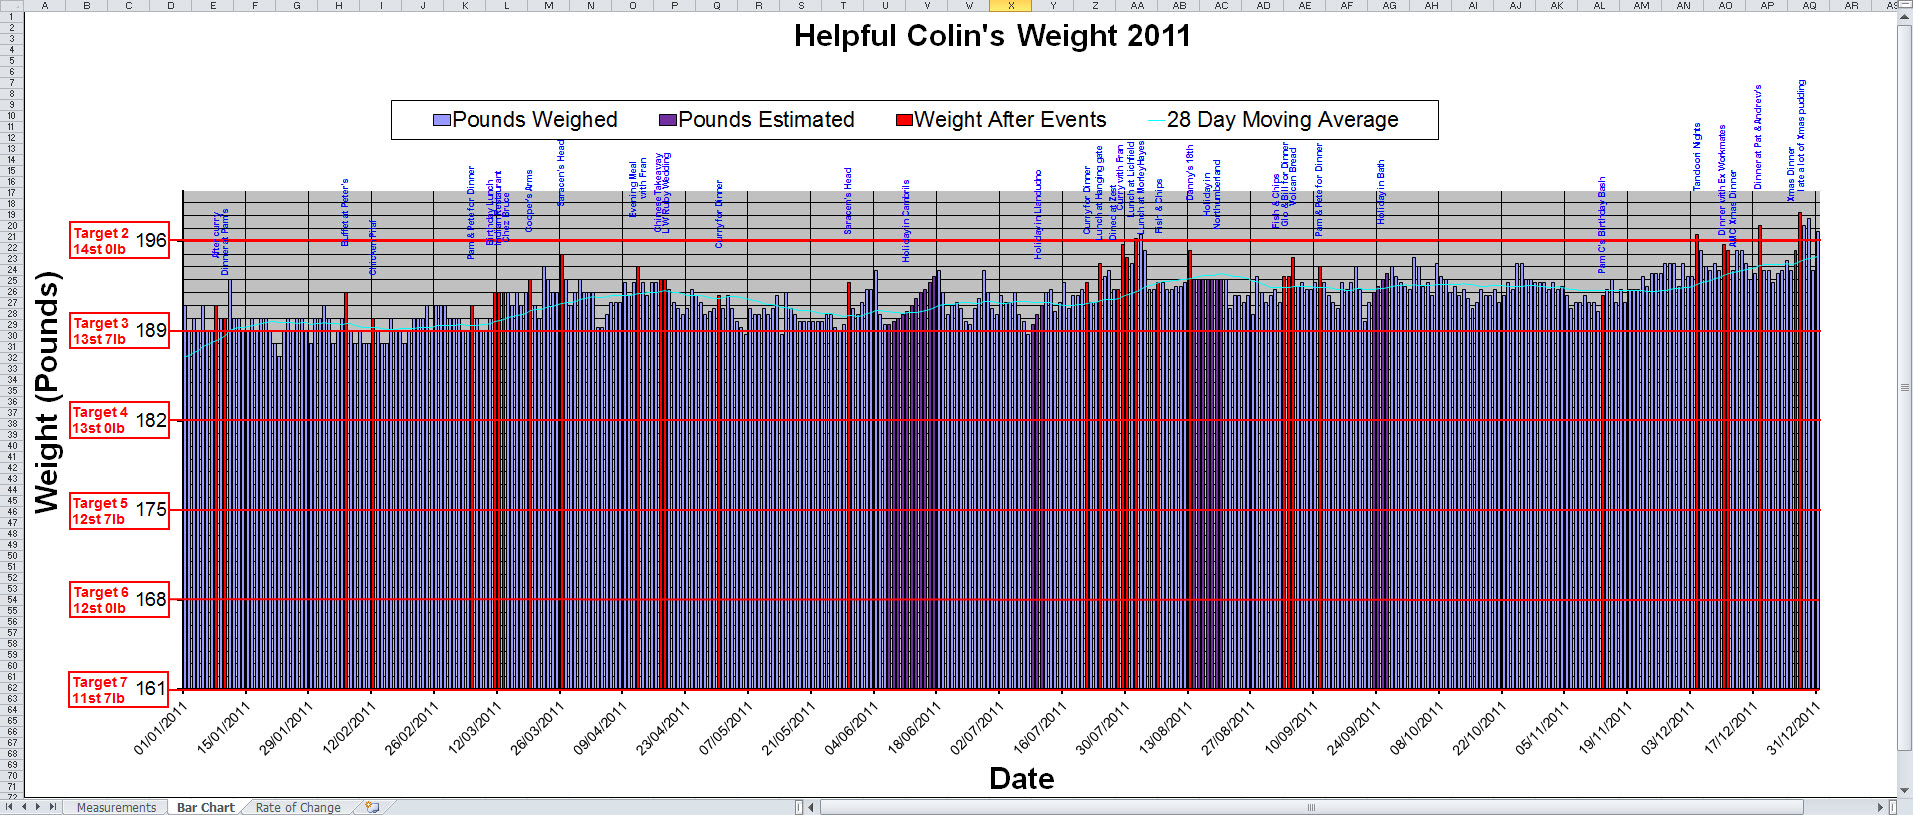 Excel Templates For Body Weight Records Helpful Colin